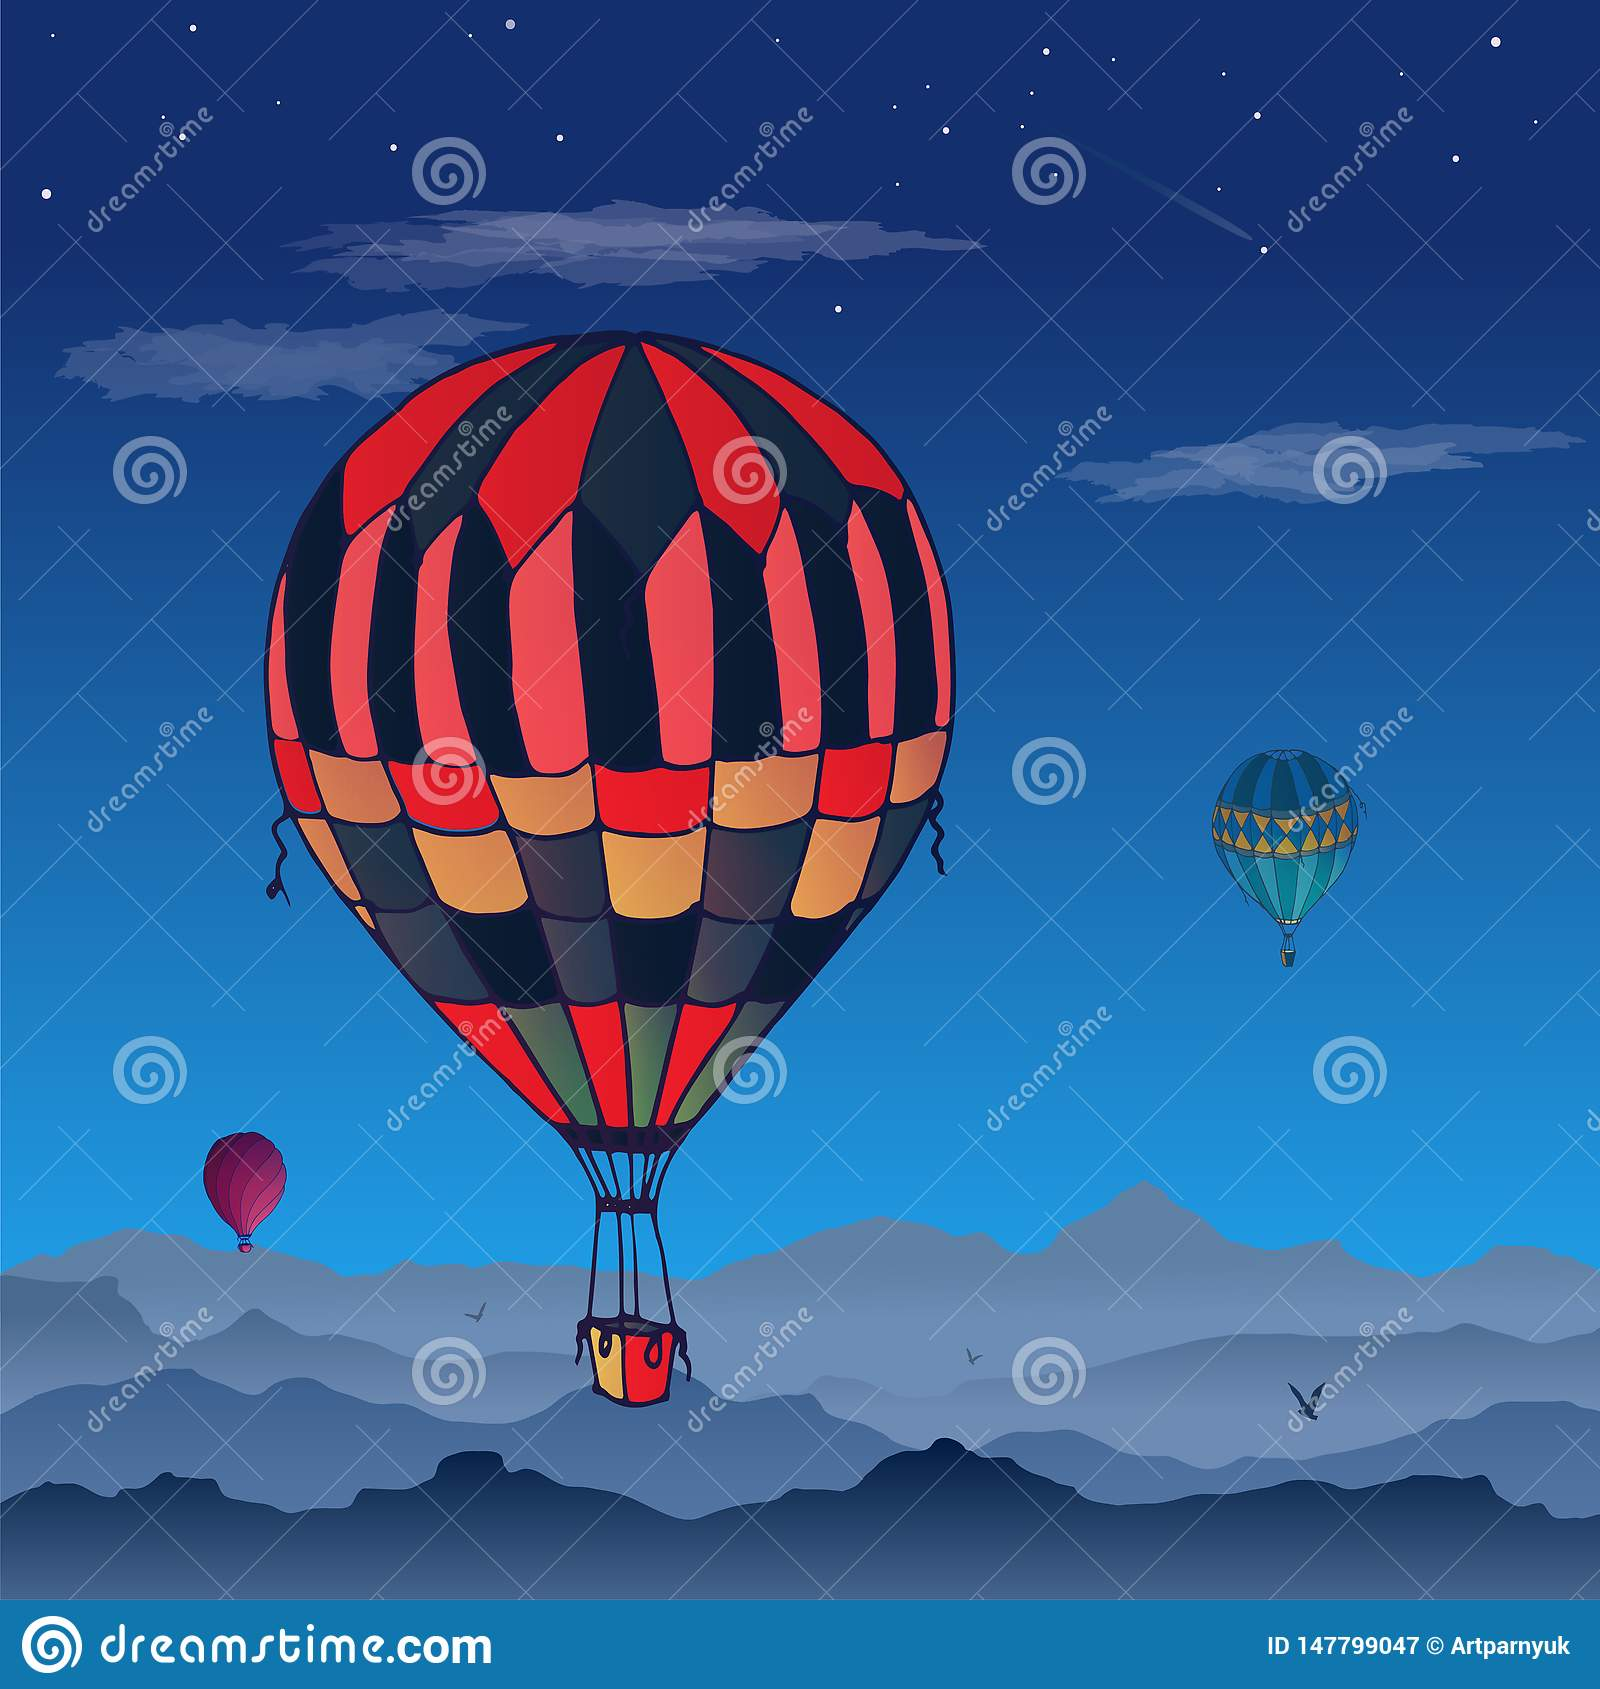 Balloons  card. Some differently colored striped air balloons flying in the clouded night sky. Patterns of clouds and birds